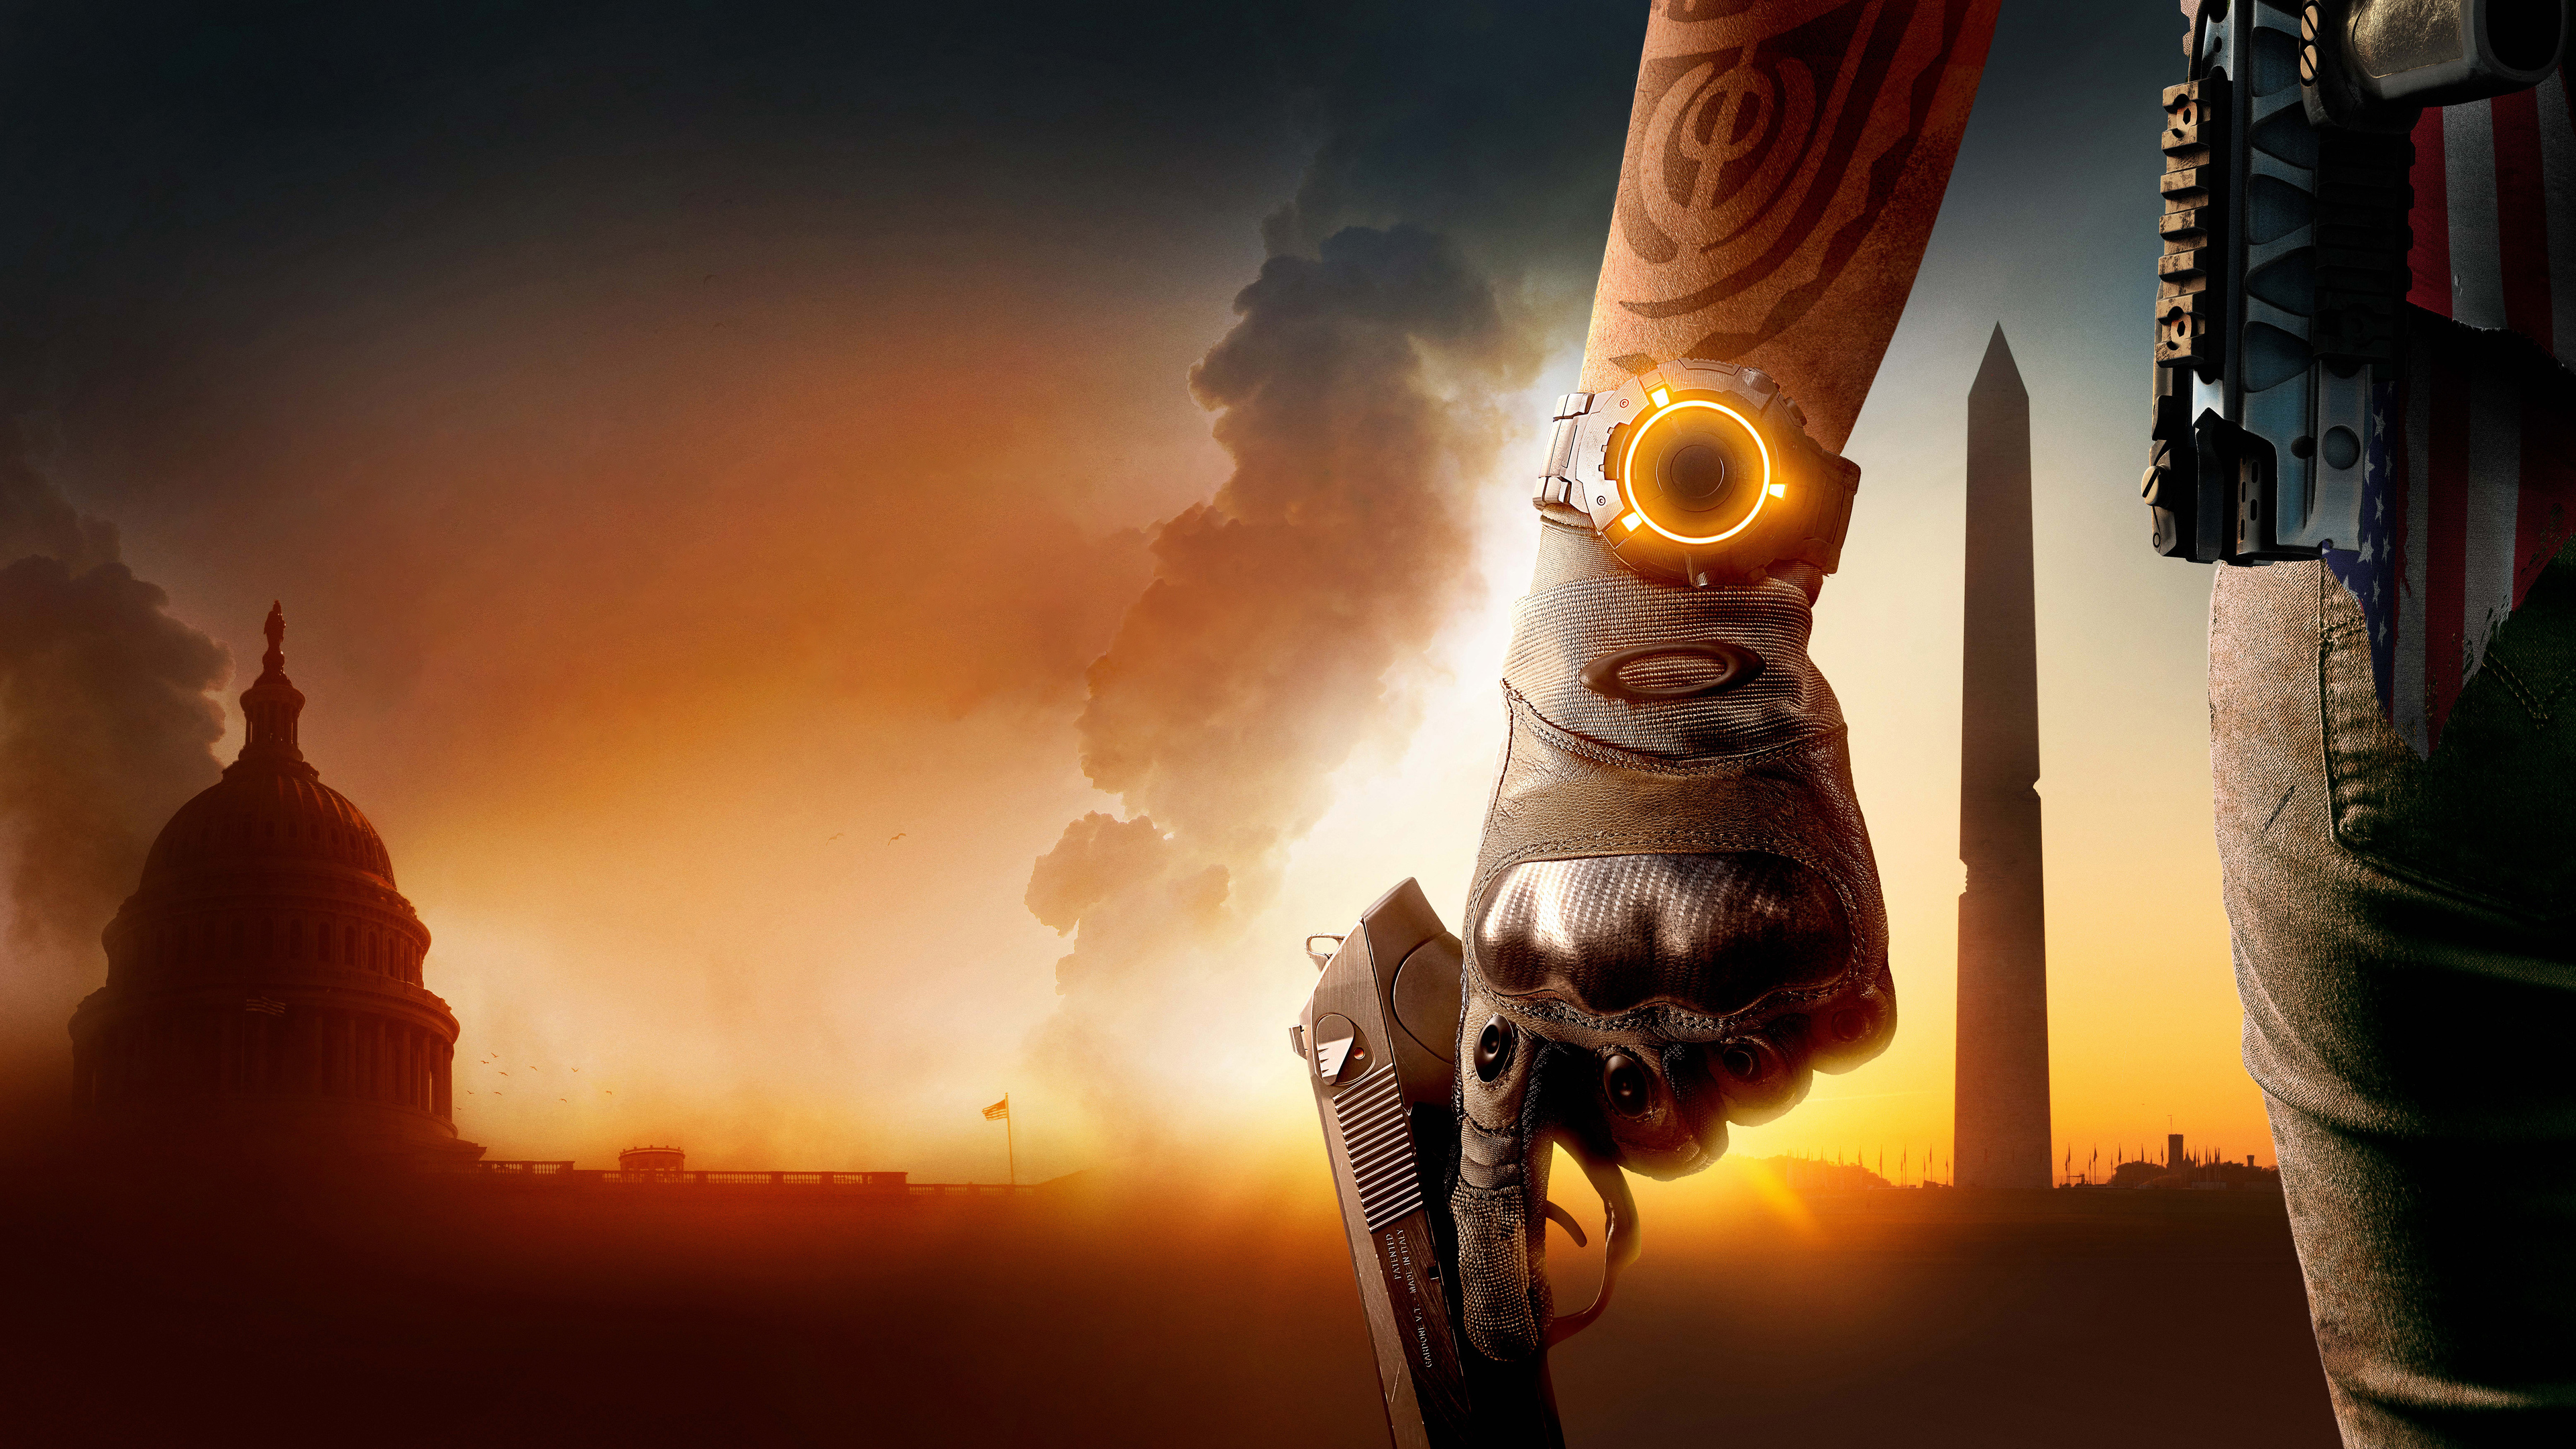 2019 tom clancys the division 2 4k 1553074976 - 2019 Tom Clancys The Division 2 4k - tom clancys the division wallpapers, tom clancys the division 2 wallpapers, hd-wallpapers, games wallpapers, 5k wallpapers, 4k-wallpapers, 2019 games wallpapers